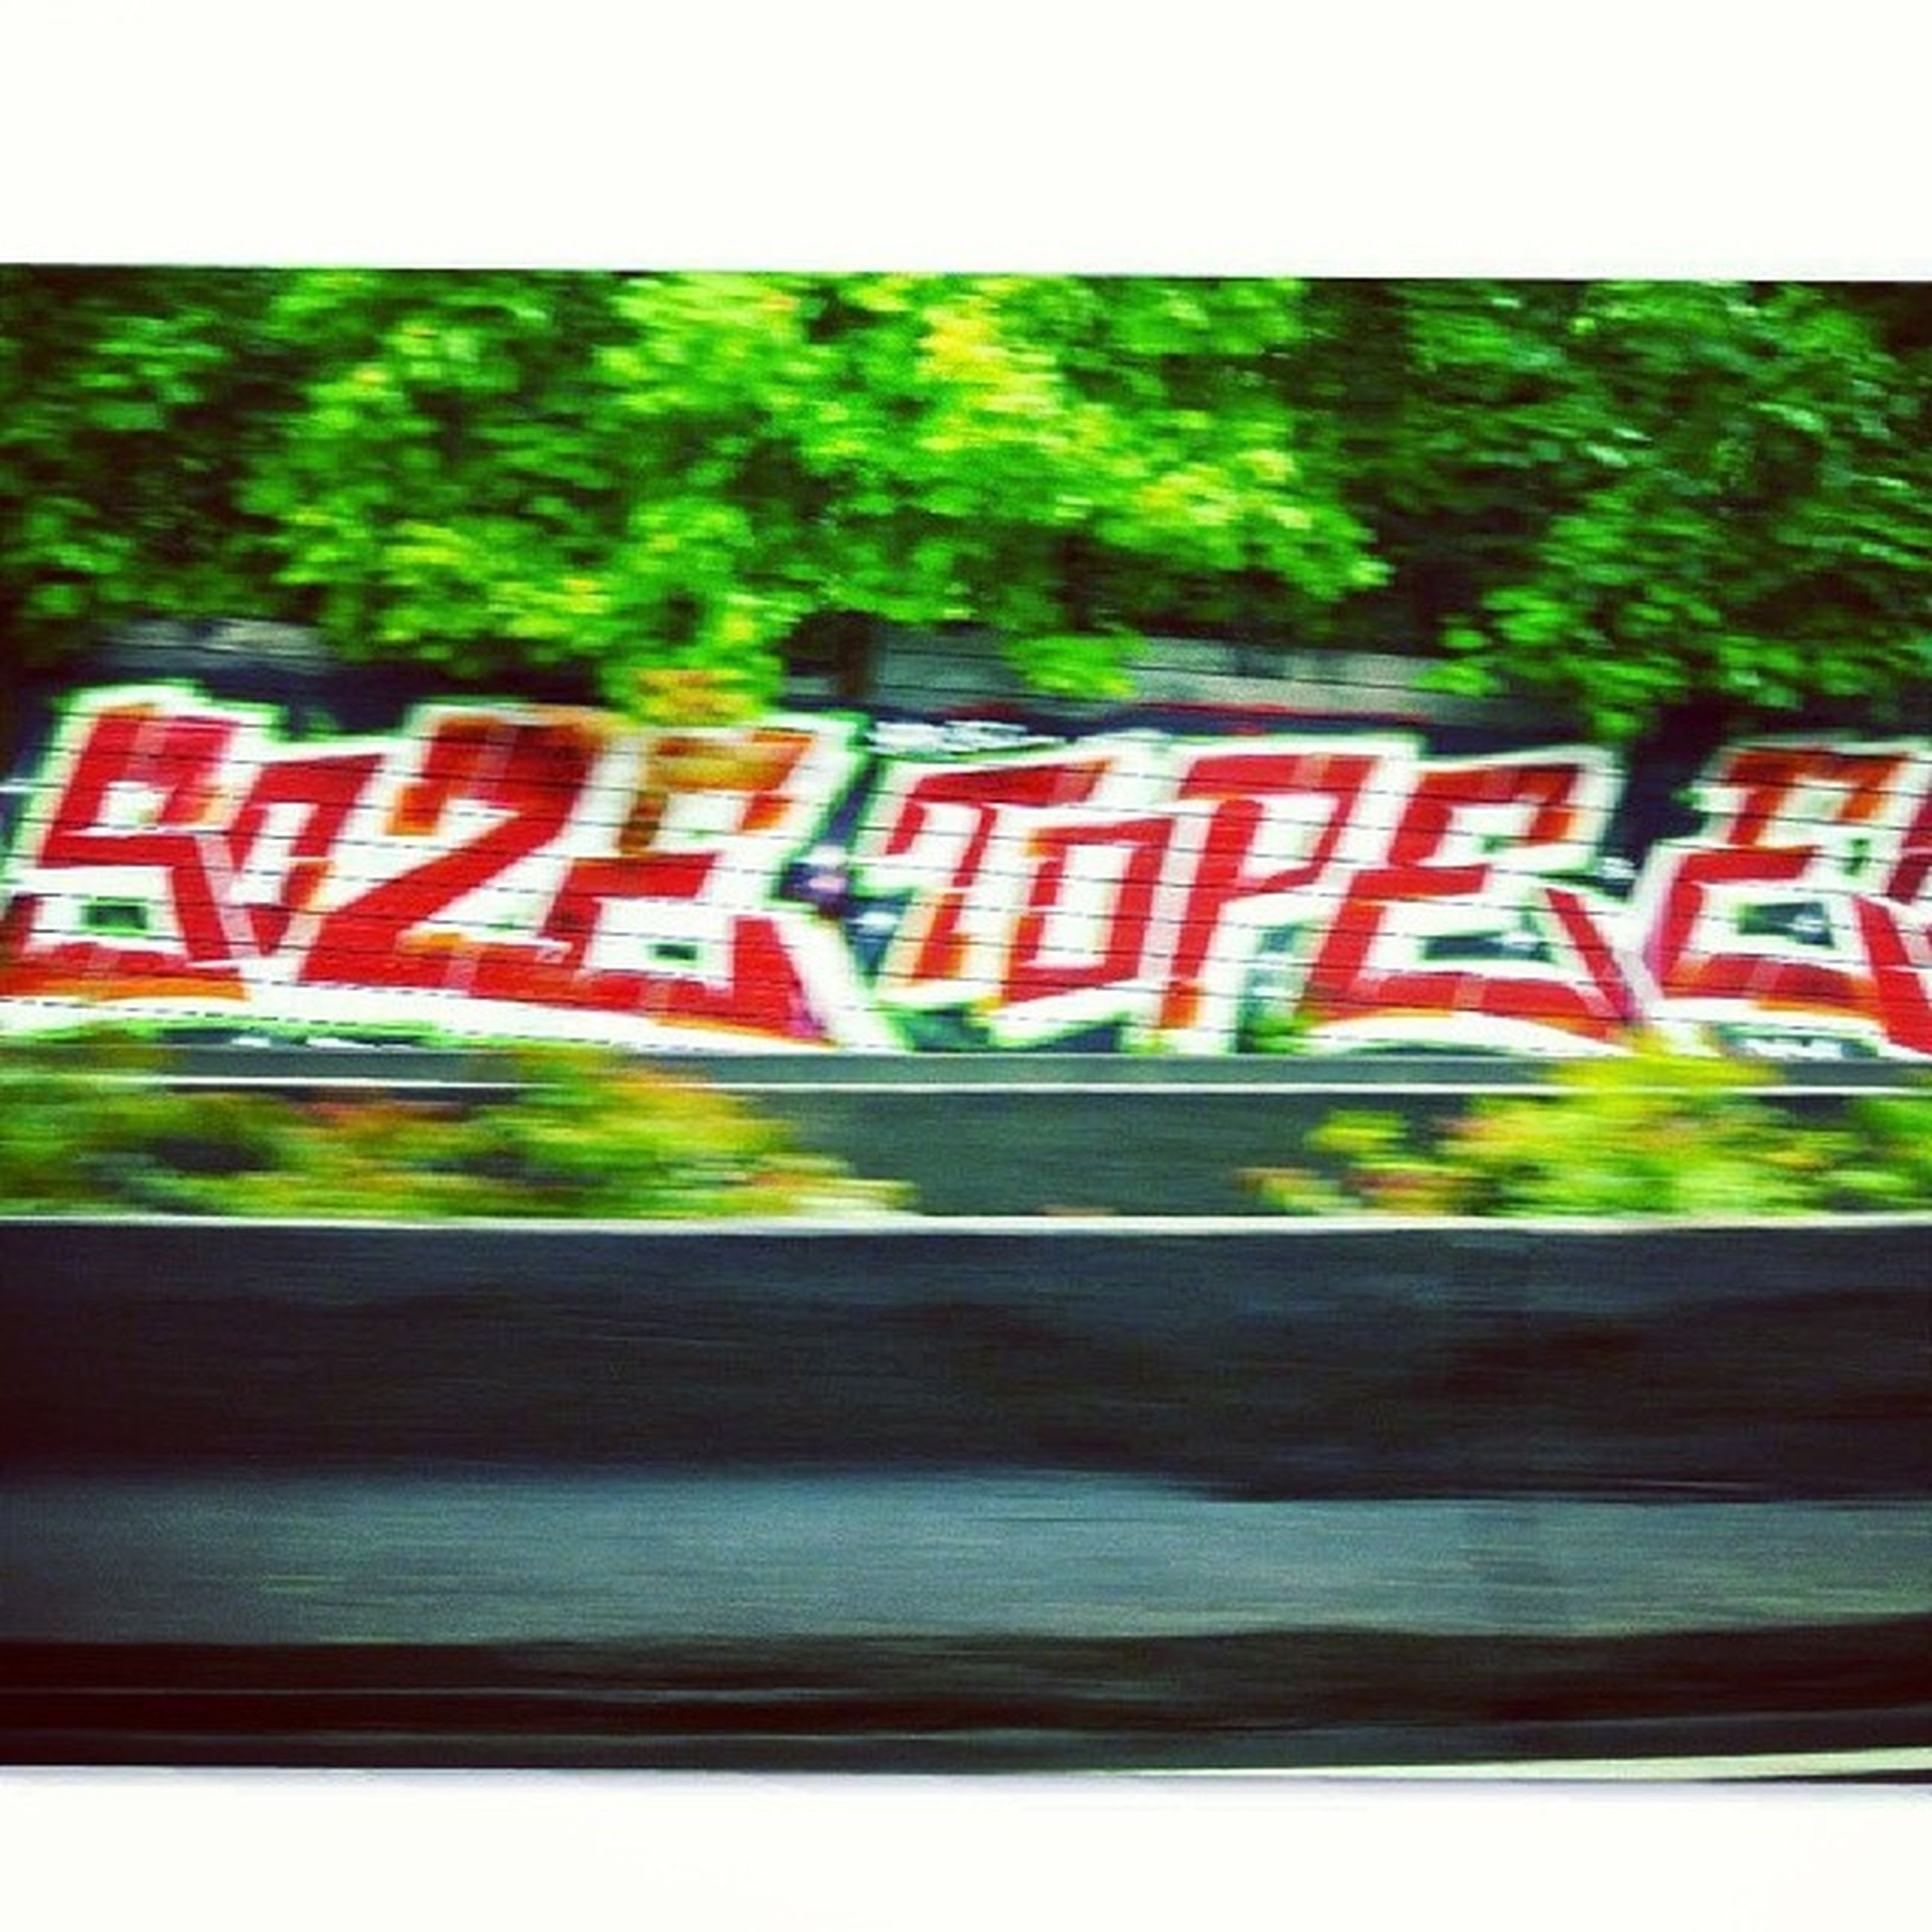 transfer print, auto post production filter, road, road marking, red, text, western script, transportation, multi colored, communication, street, graffiti, green color, flag, outdoors, day, no people, patriotism, striped, road sign